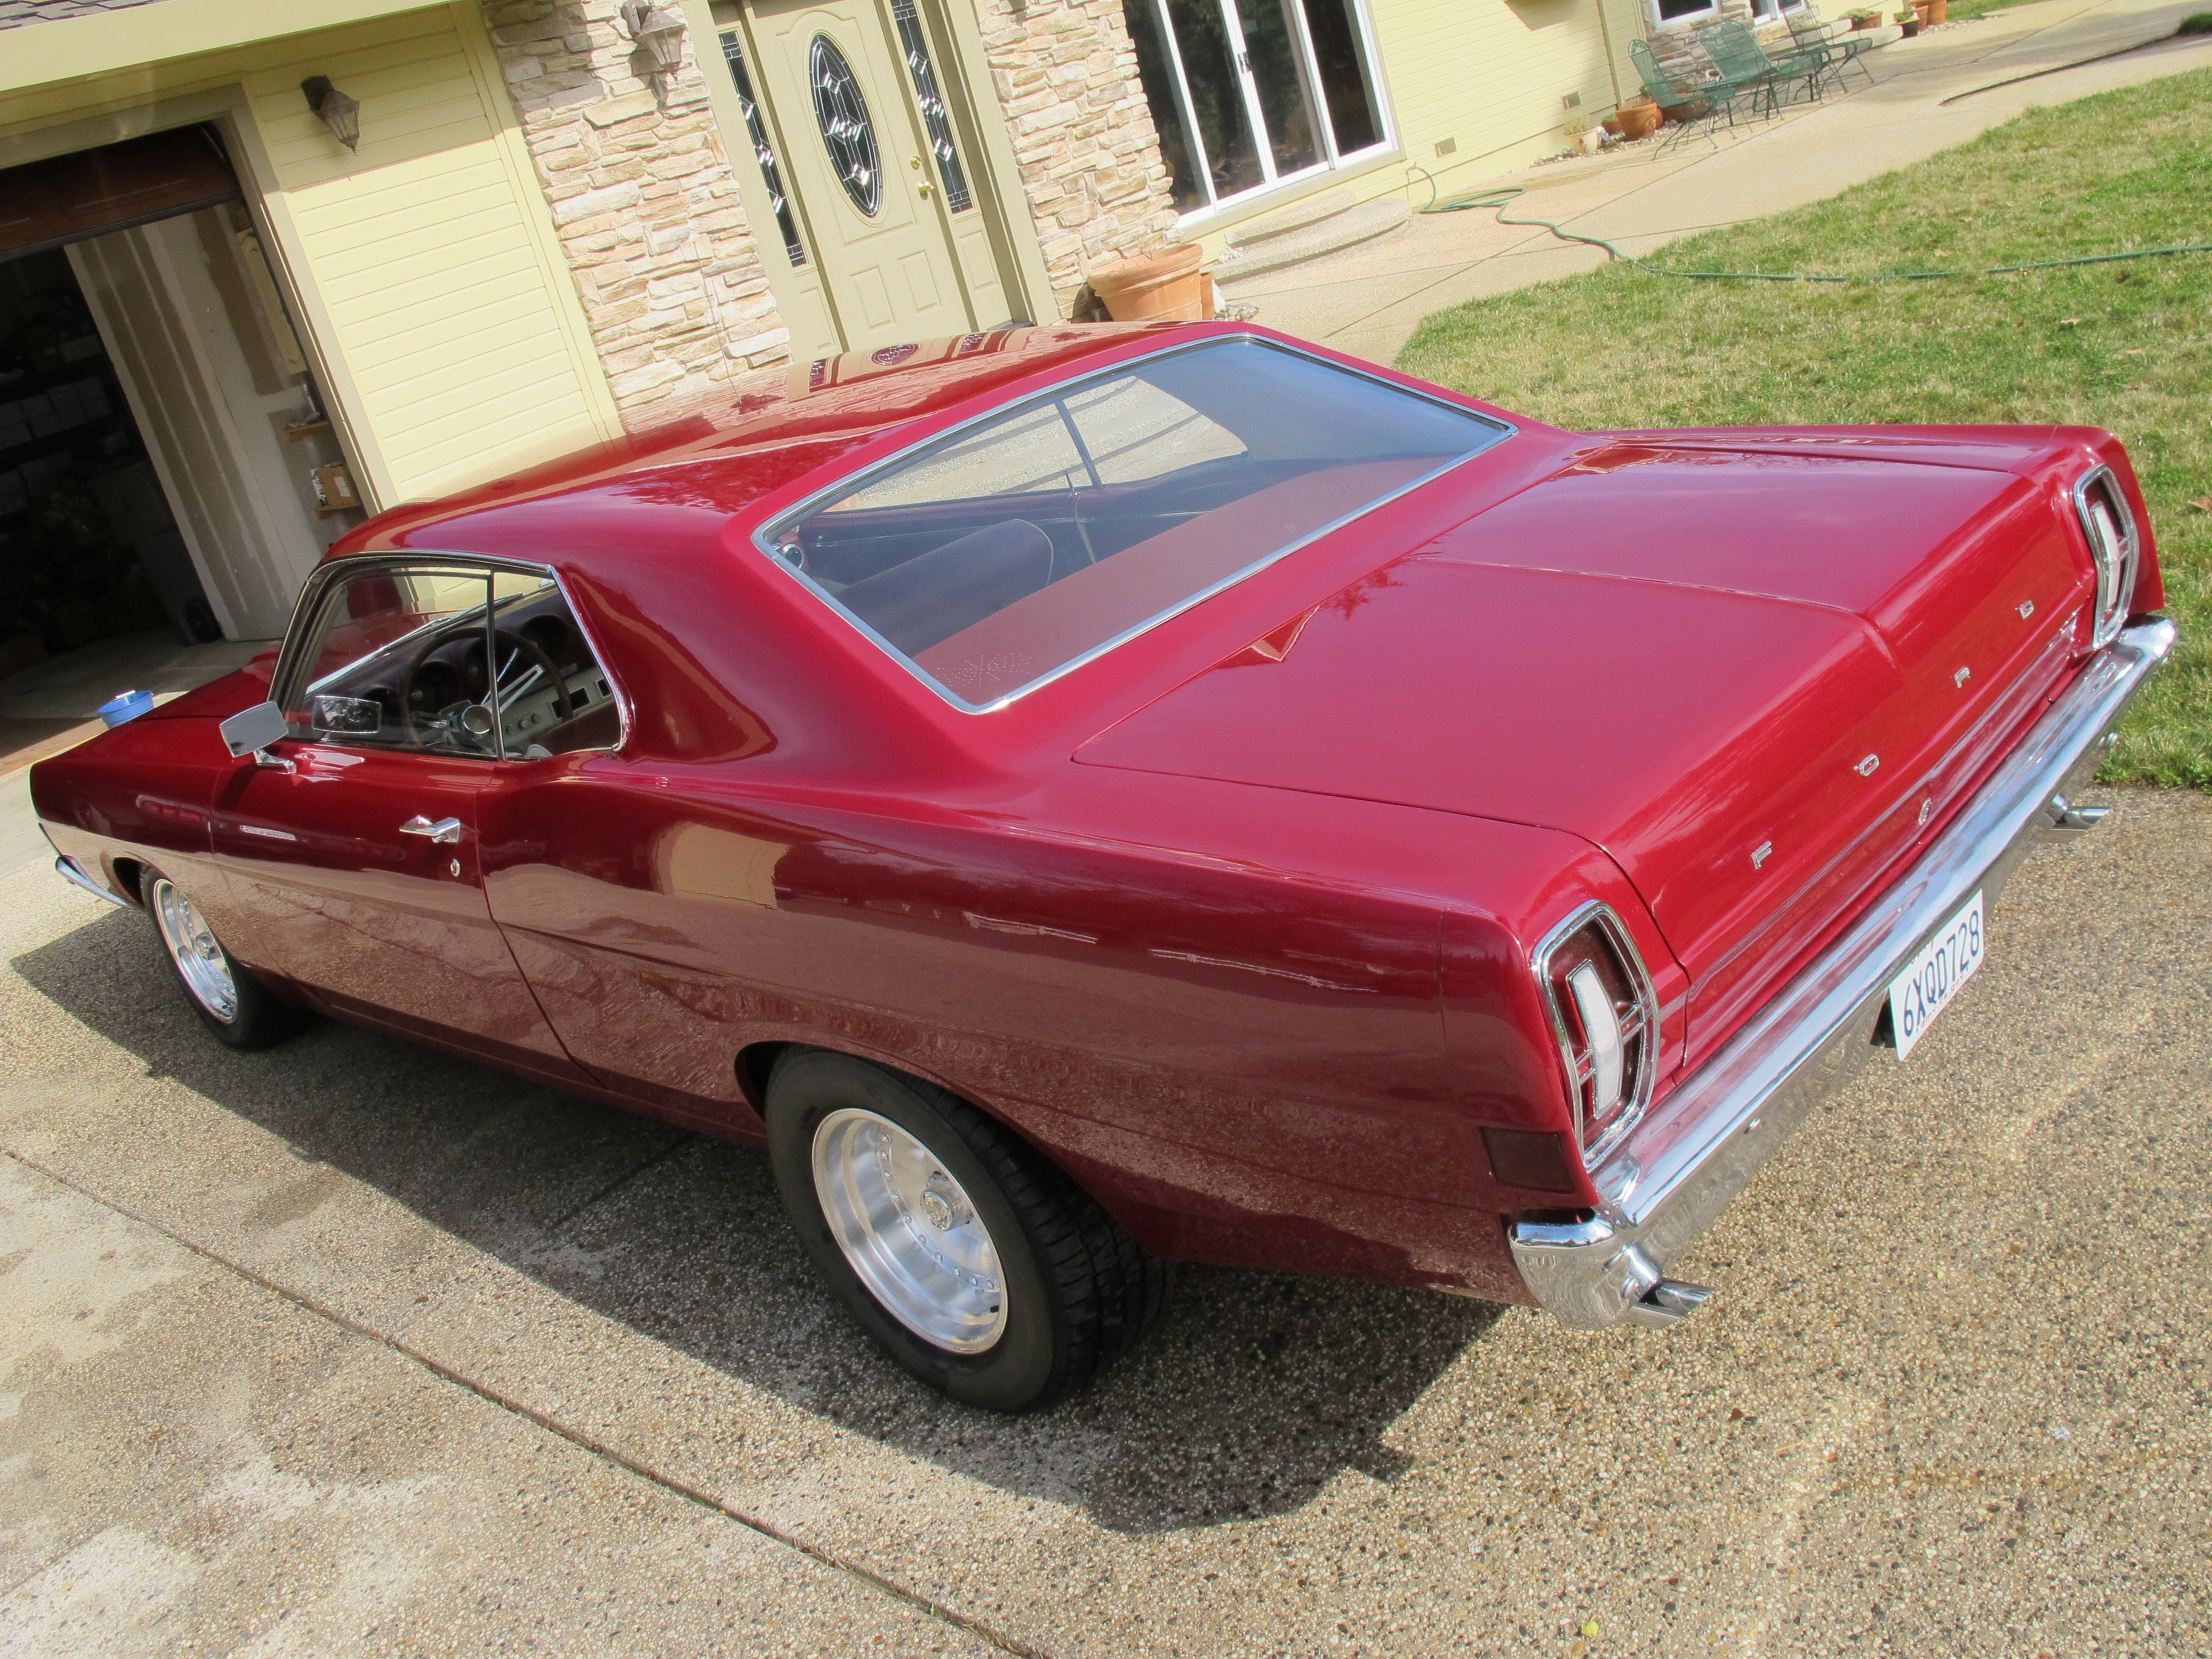 Pin by rodney prunty on 60s and 70s cars | Ford classic cars